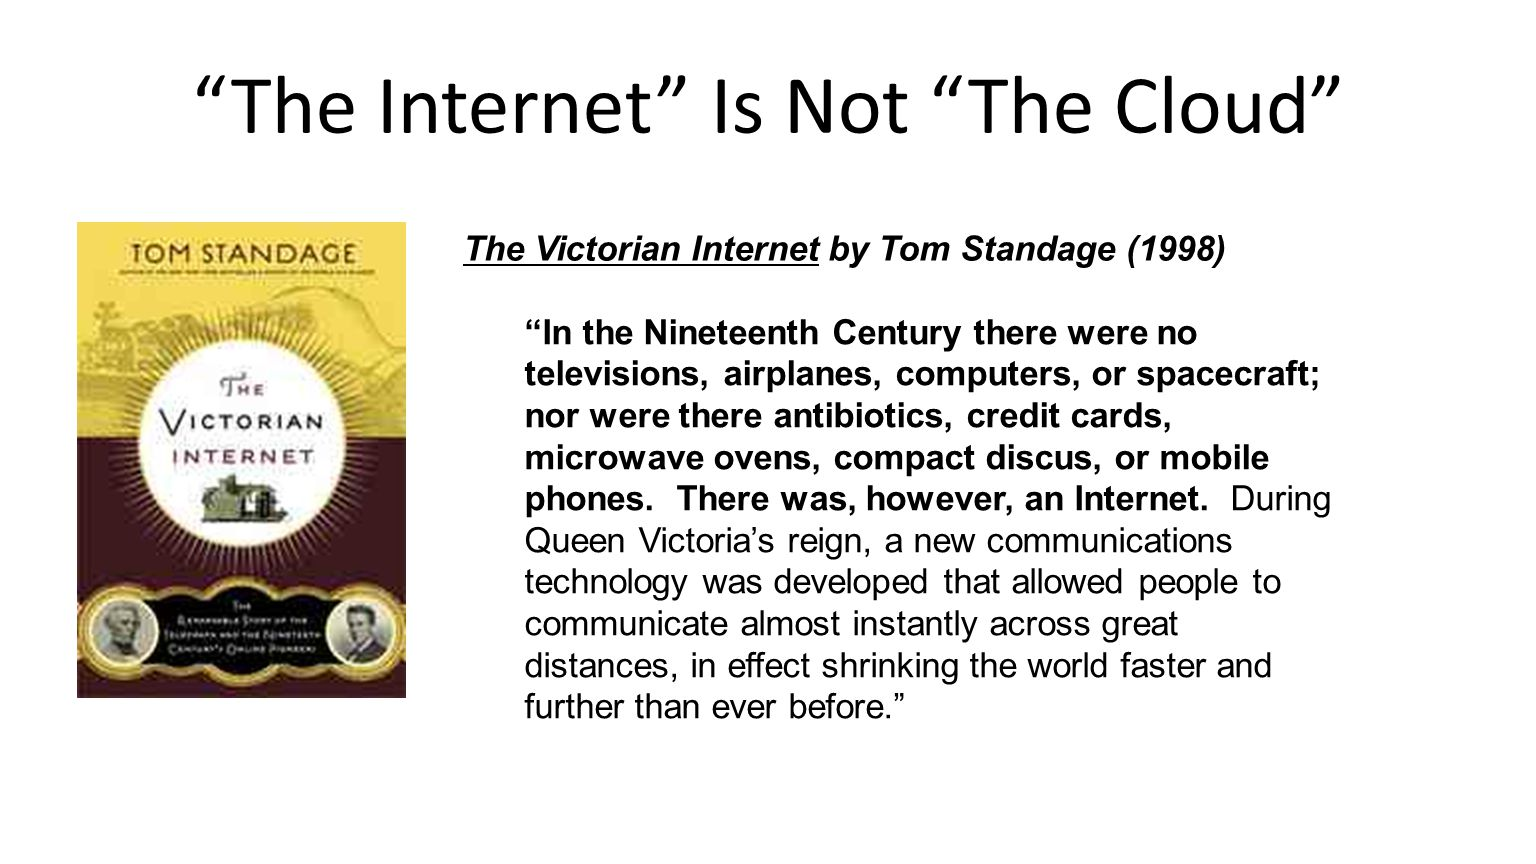 The Internet Is Not The Cloud In the Nineteenth Century there were no televisions, airplanes, computers, or spacecraft; nor were there antibiotics, credit cards, microwave ovens, compact discus, or mobile phones.